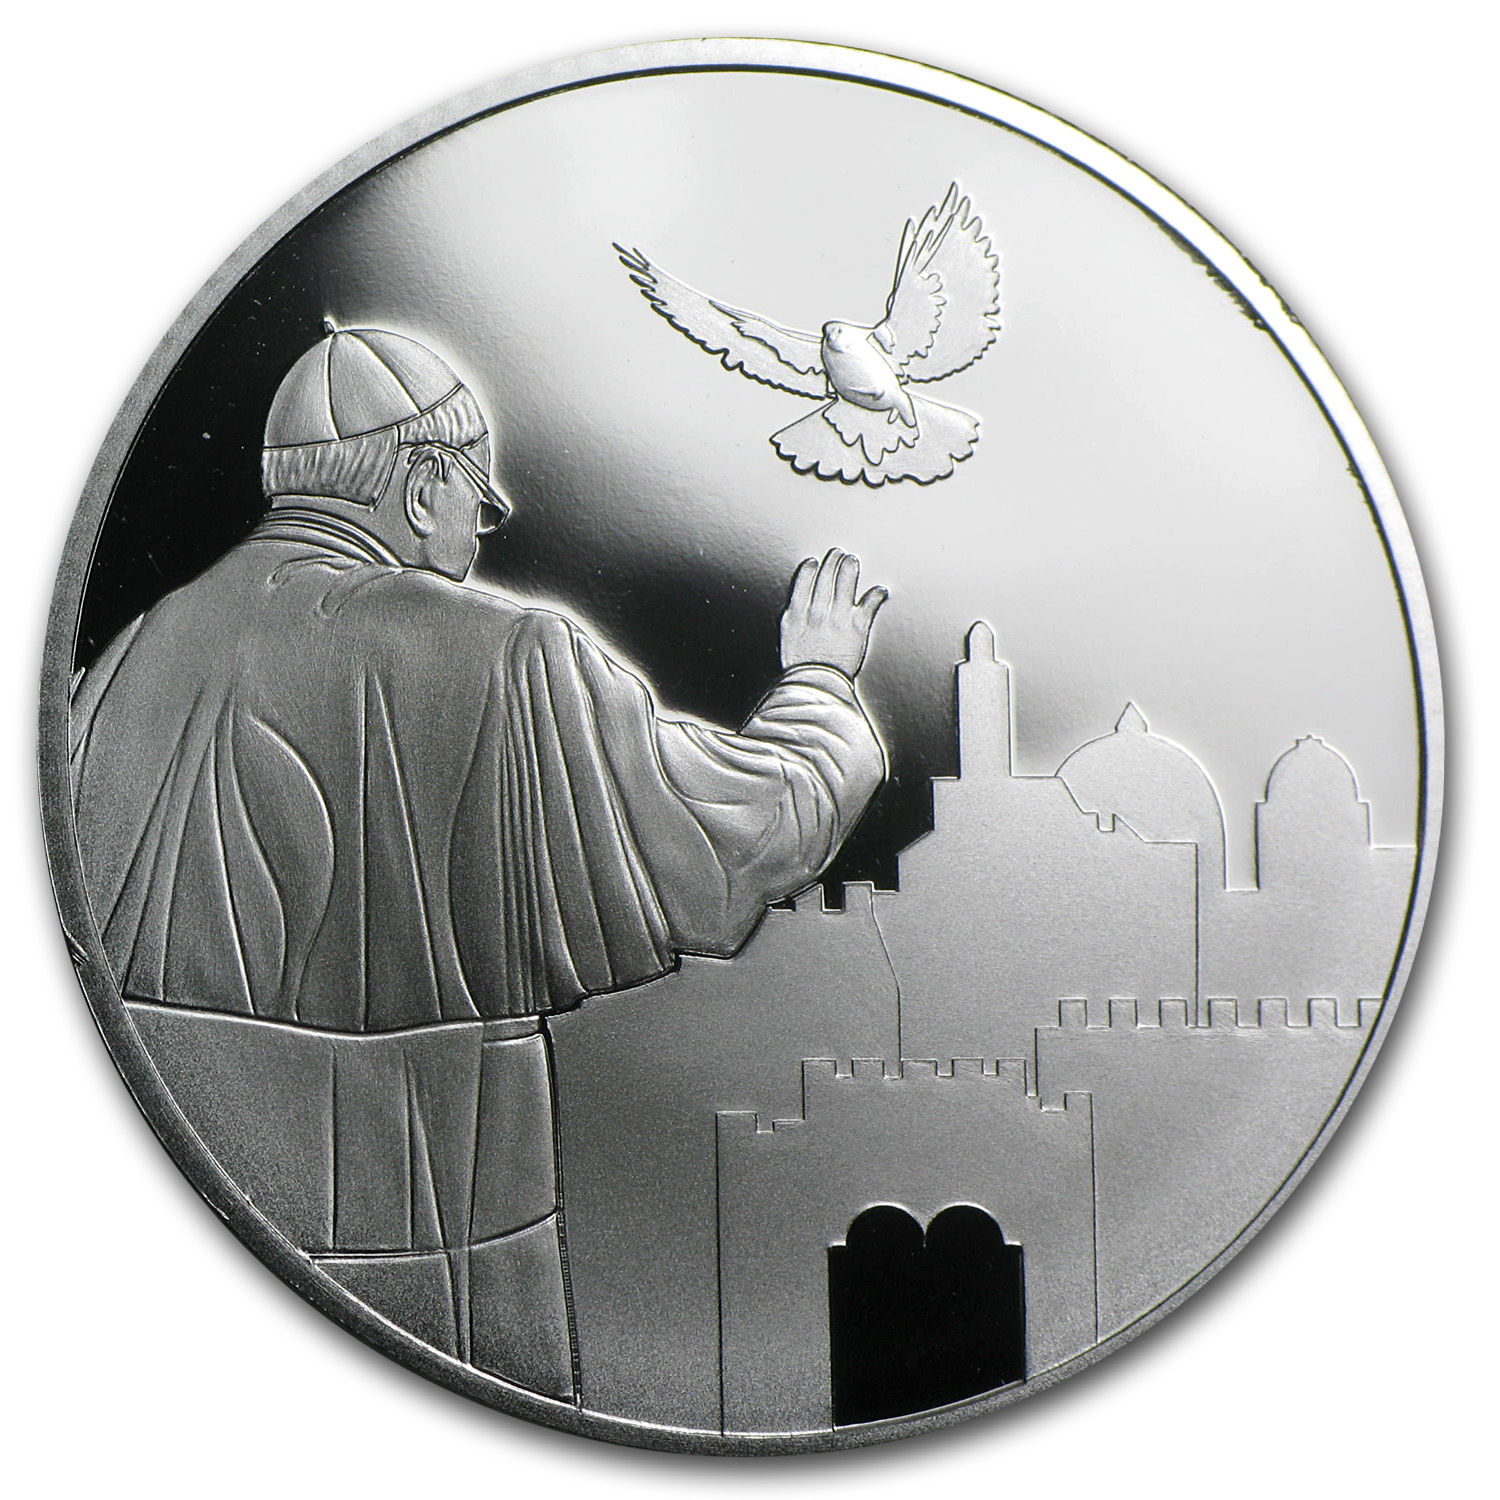 2014 1 oz Silver Round - Pope Francis Visit to the Holy Land